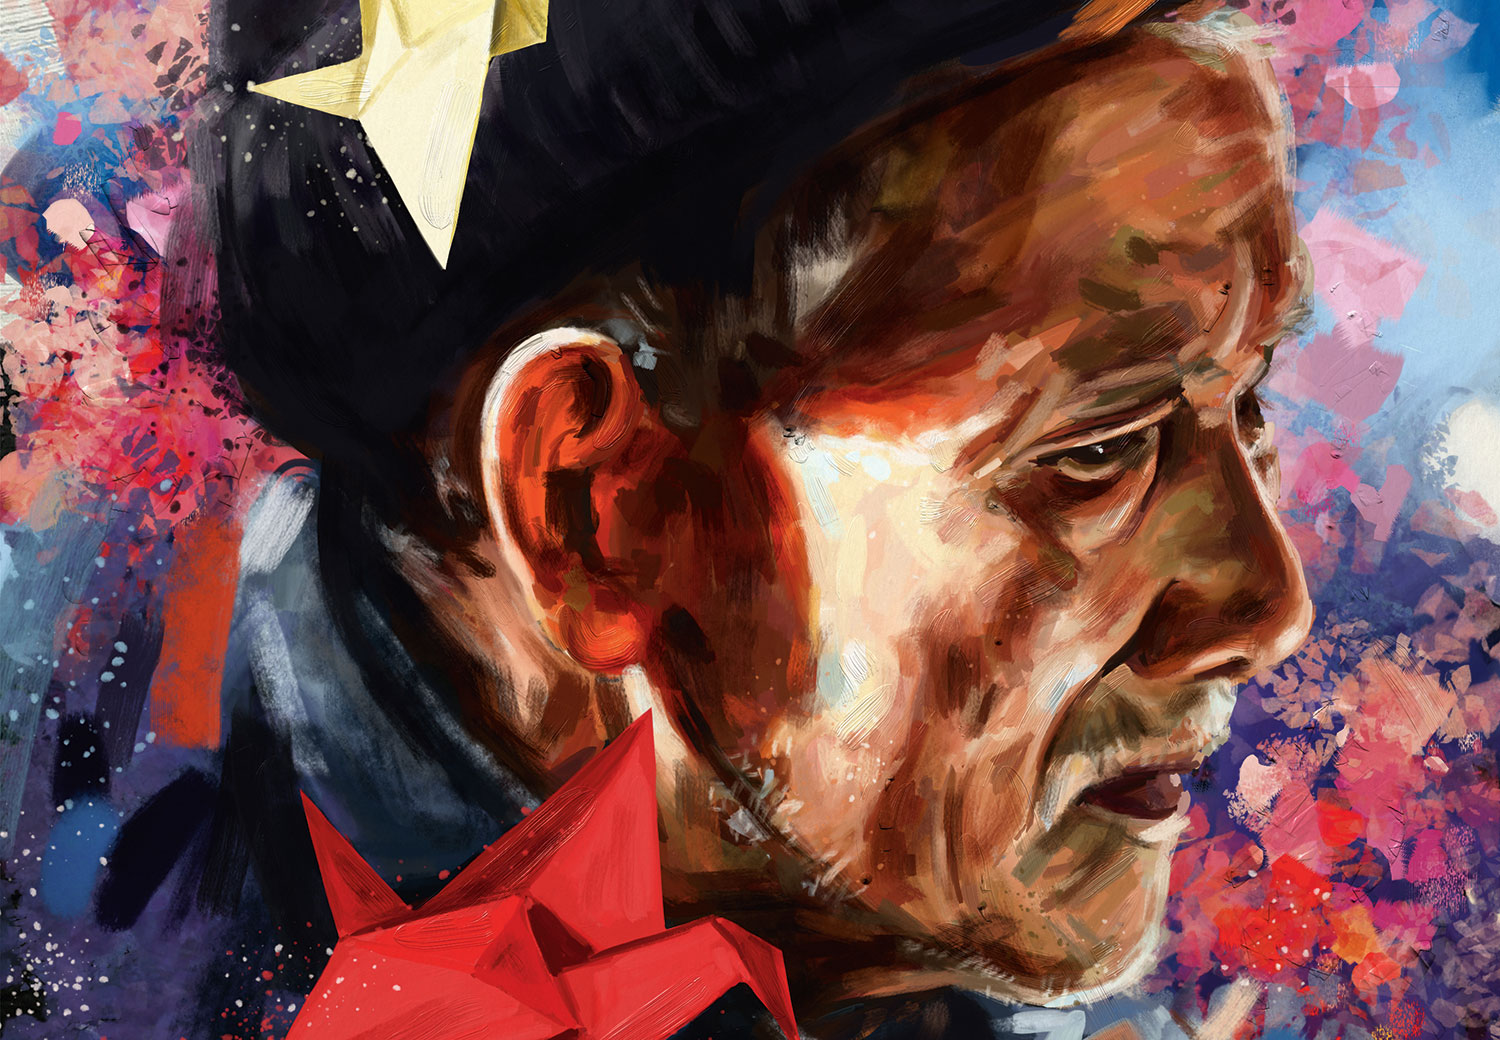 Paint expressive portrait art with ArtRage 5